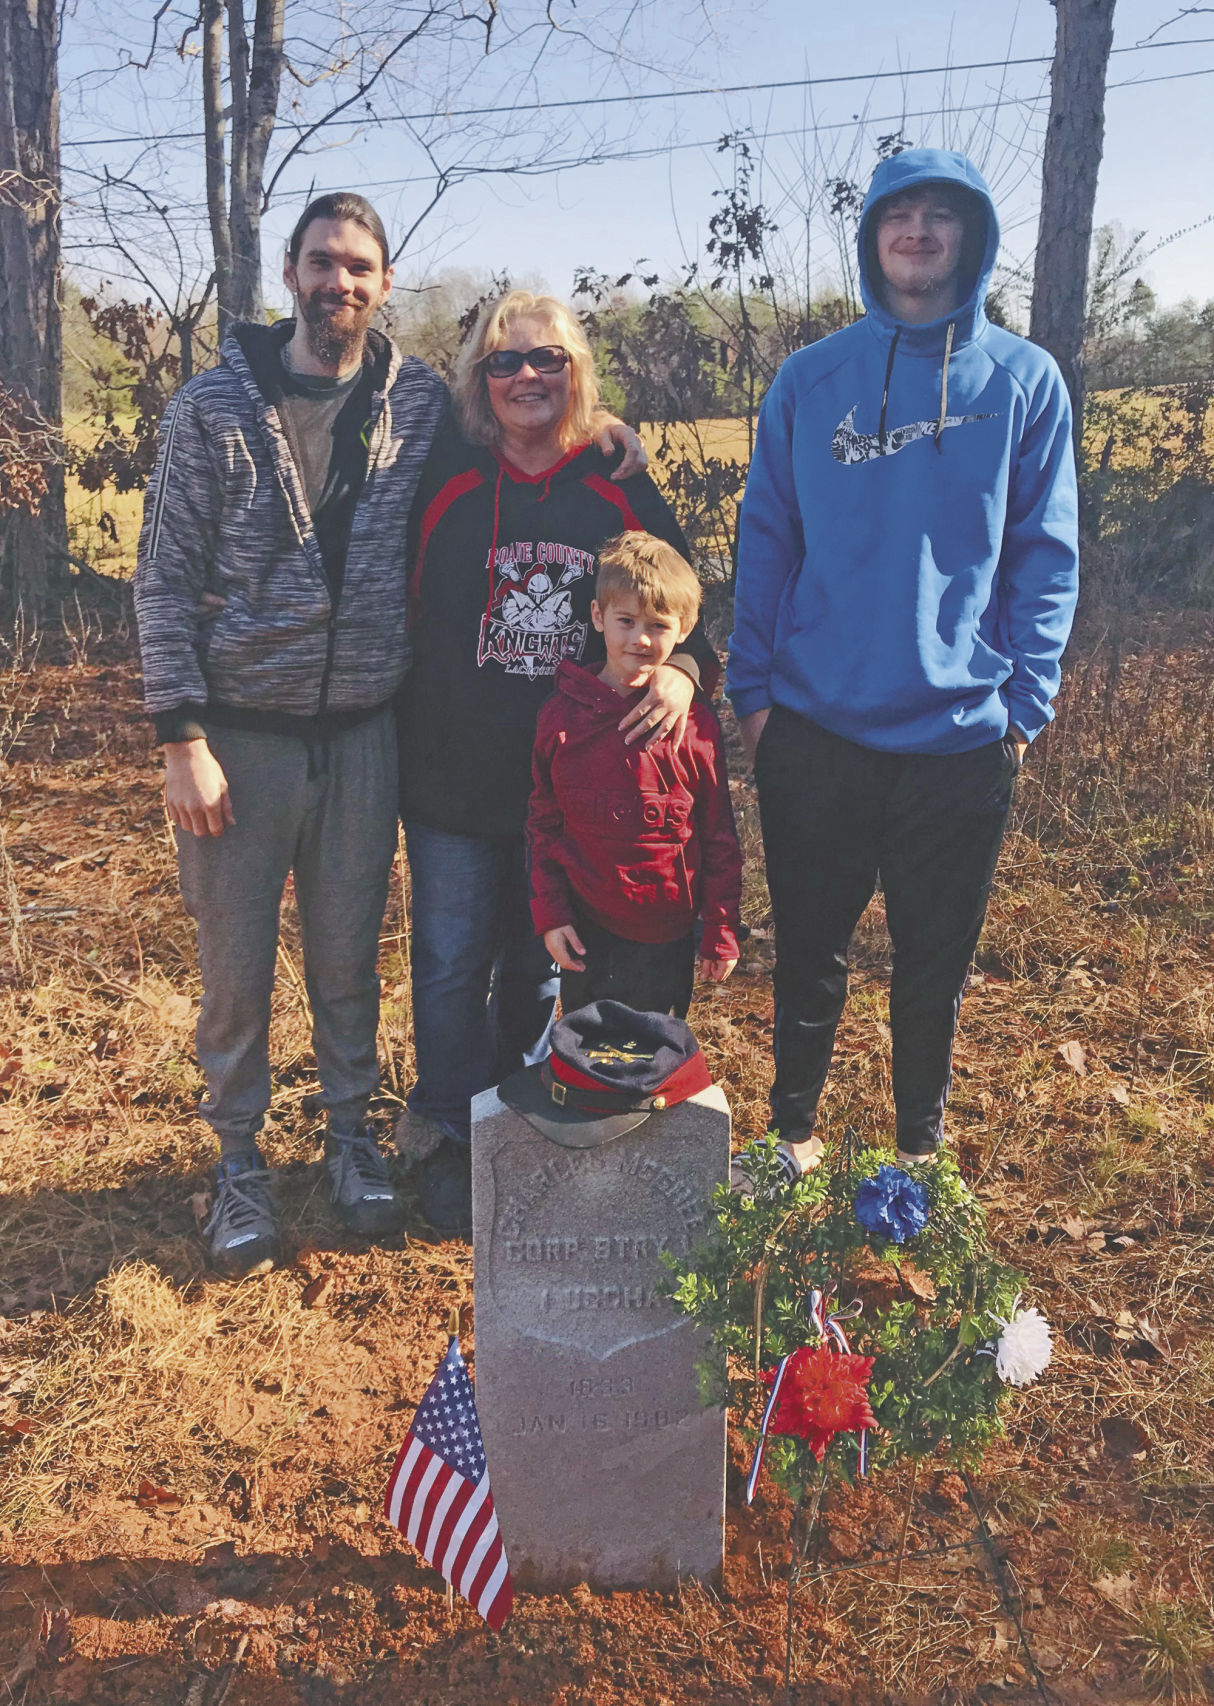 Military marker installed for Cpl. McGhee